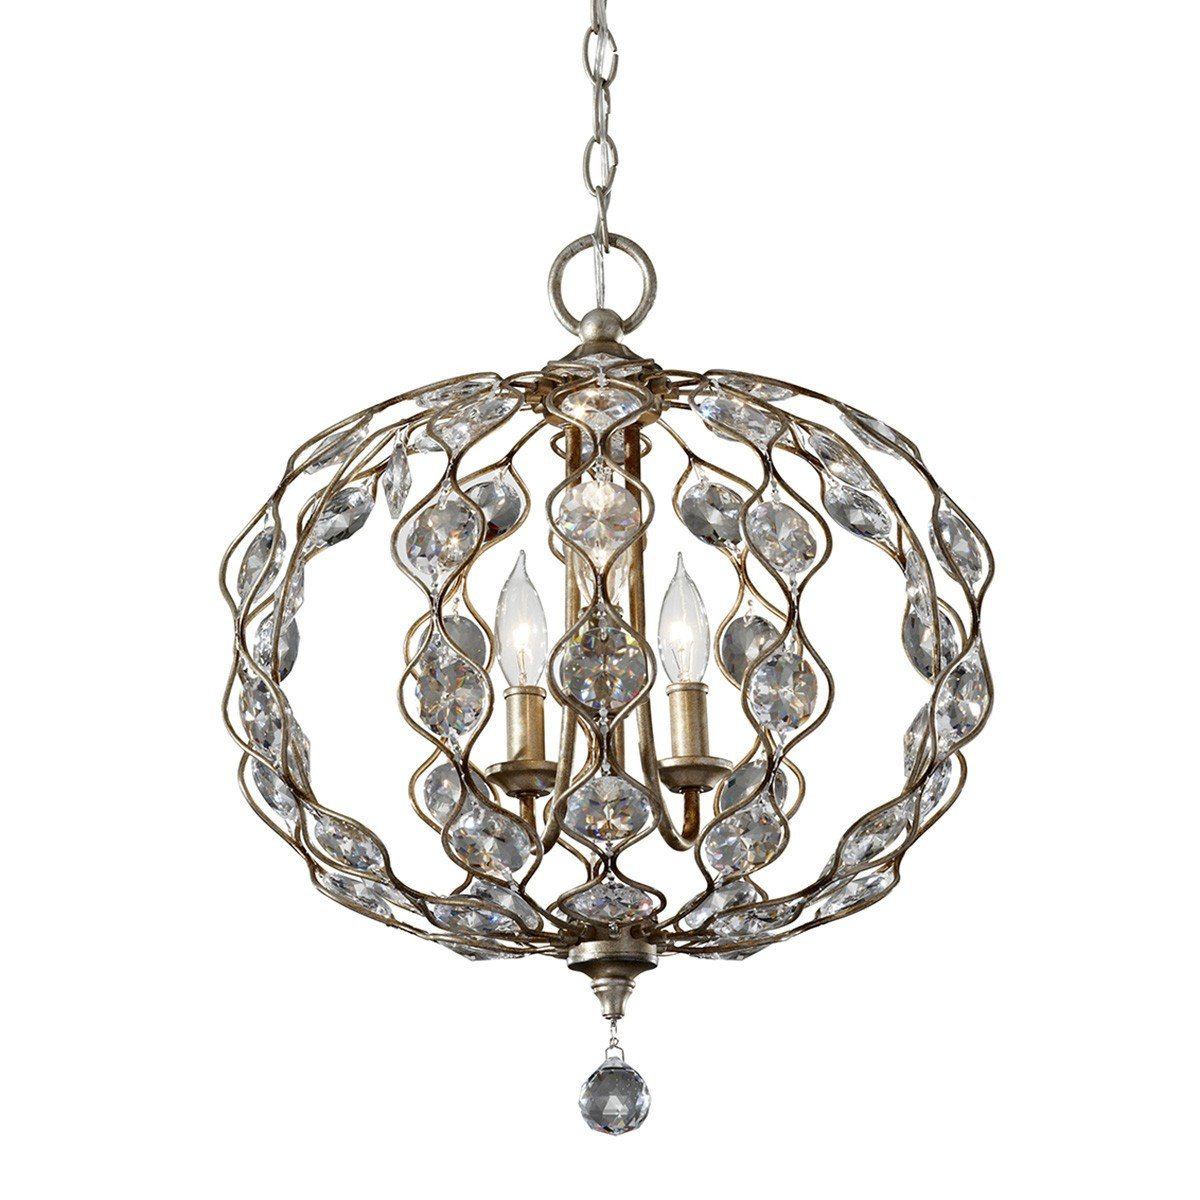 Feiss Leila 3 Light Chandelier - London Lighting - 1